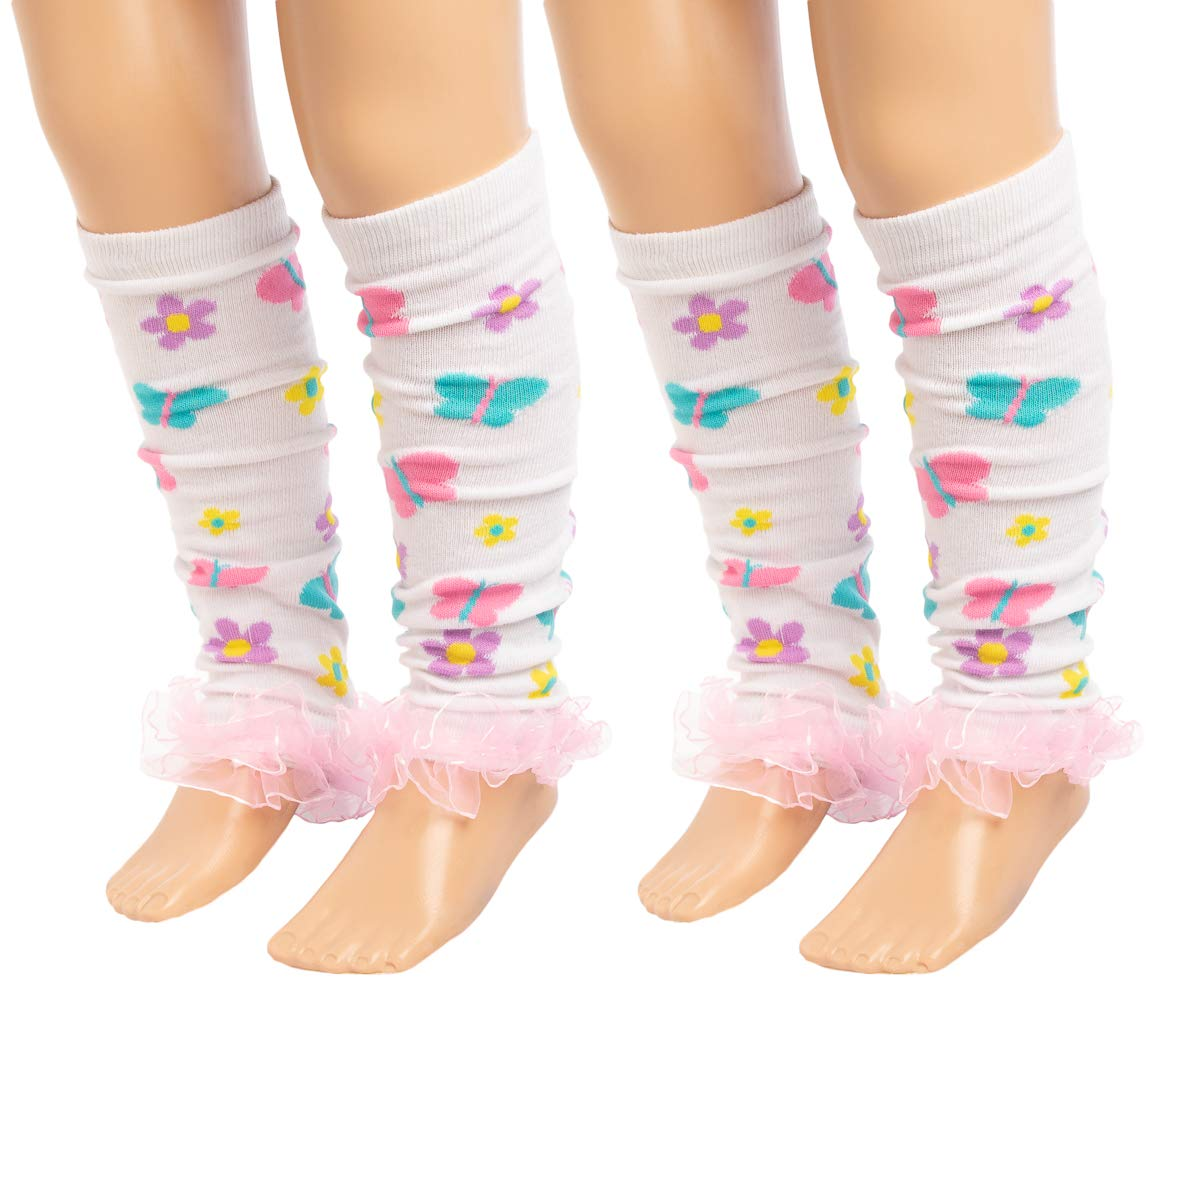 Baby-Toddler Girls Leg Warmers Patterned Dance Ruffles Princess Expressions 4 Pack